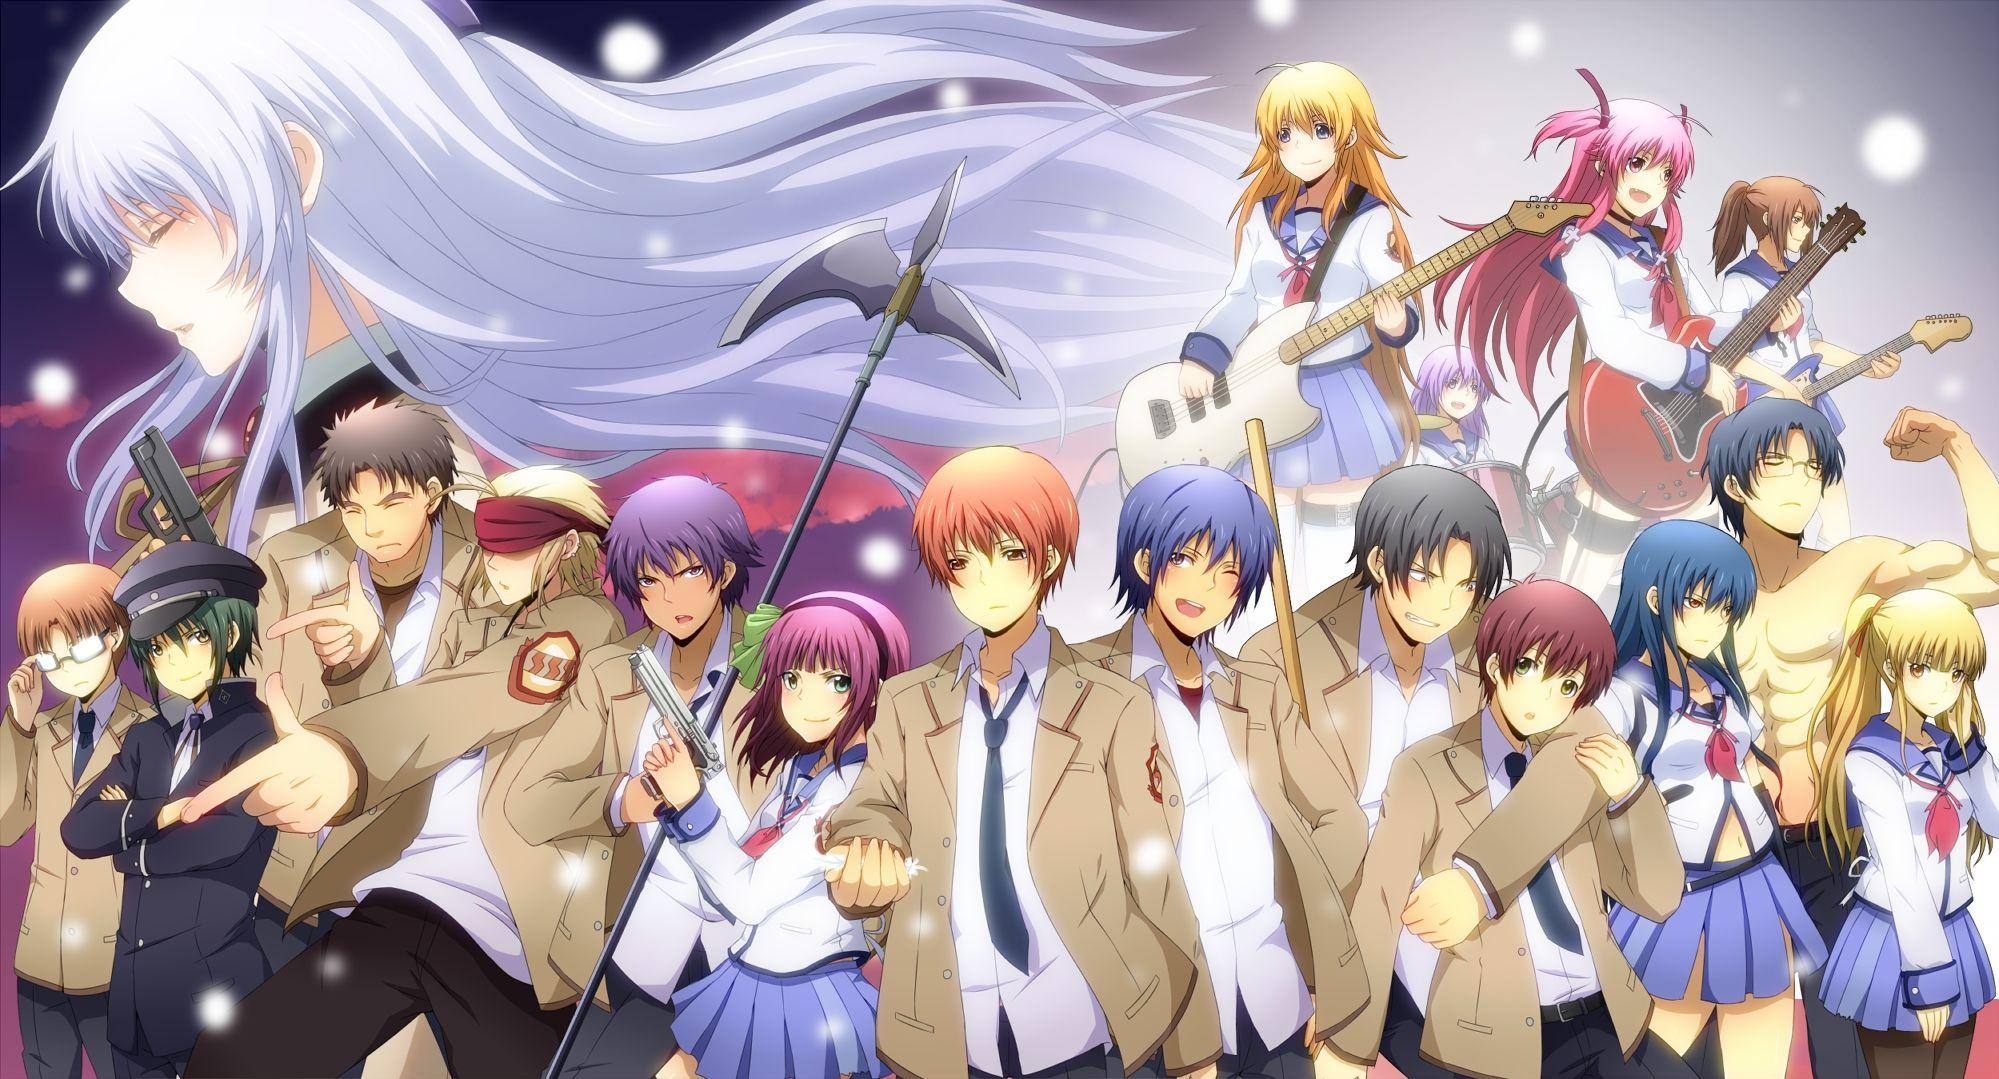 Angel Beats Anime Hd Wallpapers Wallpaper Cave